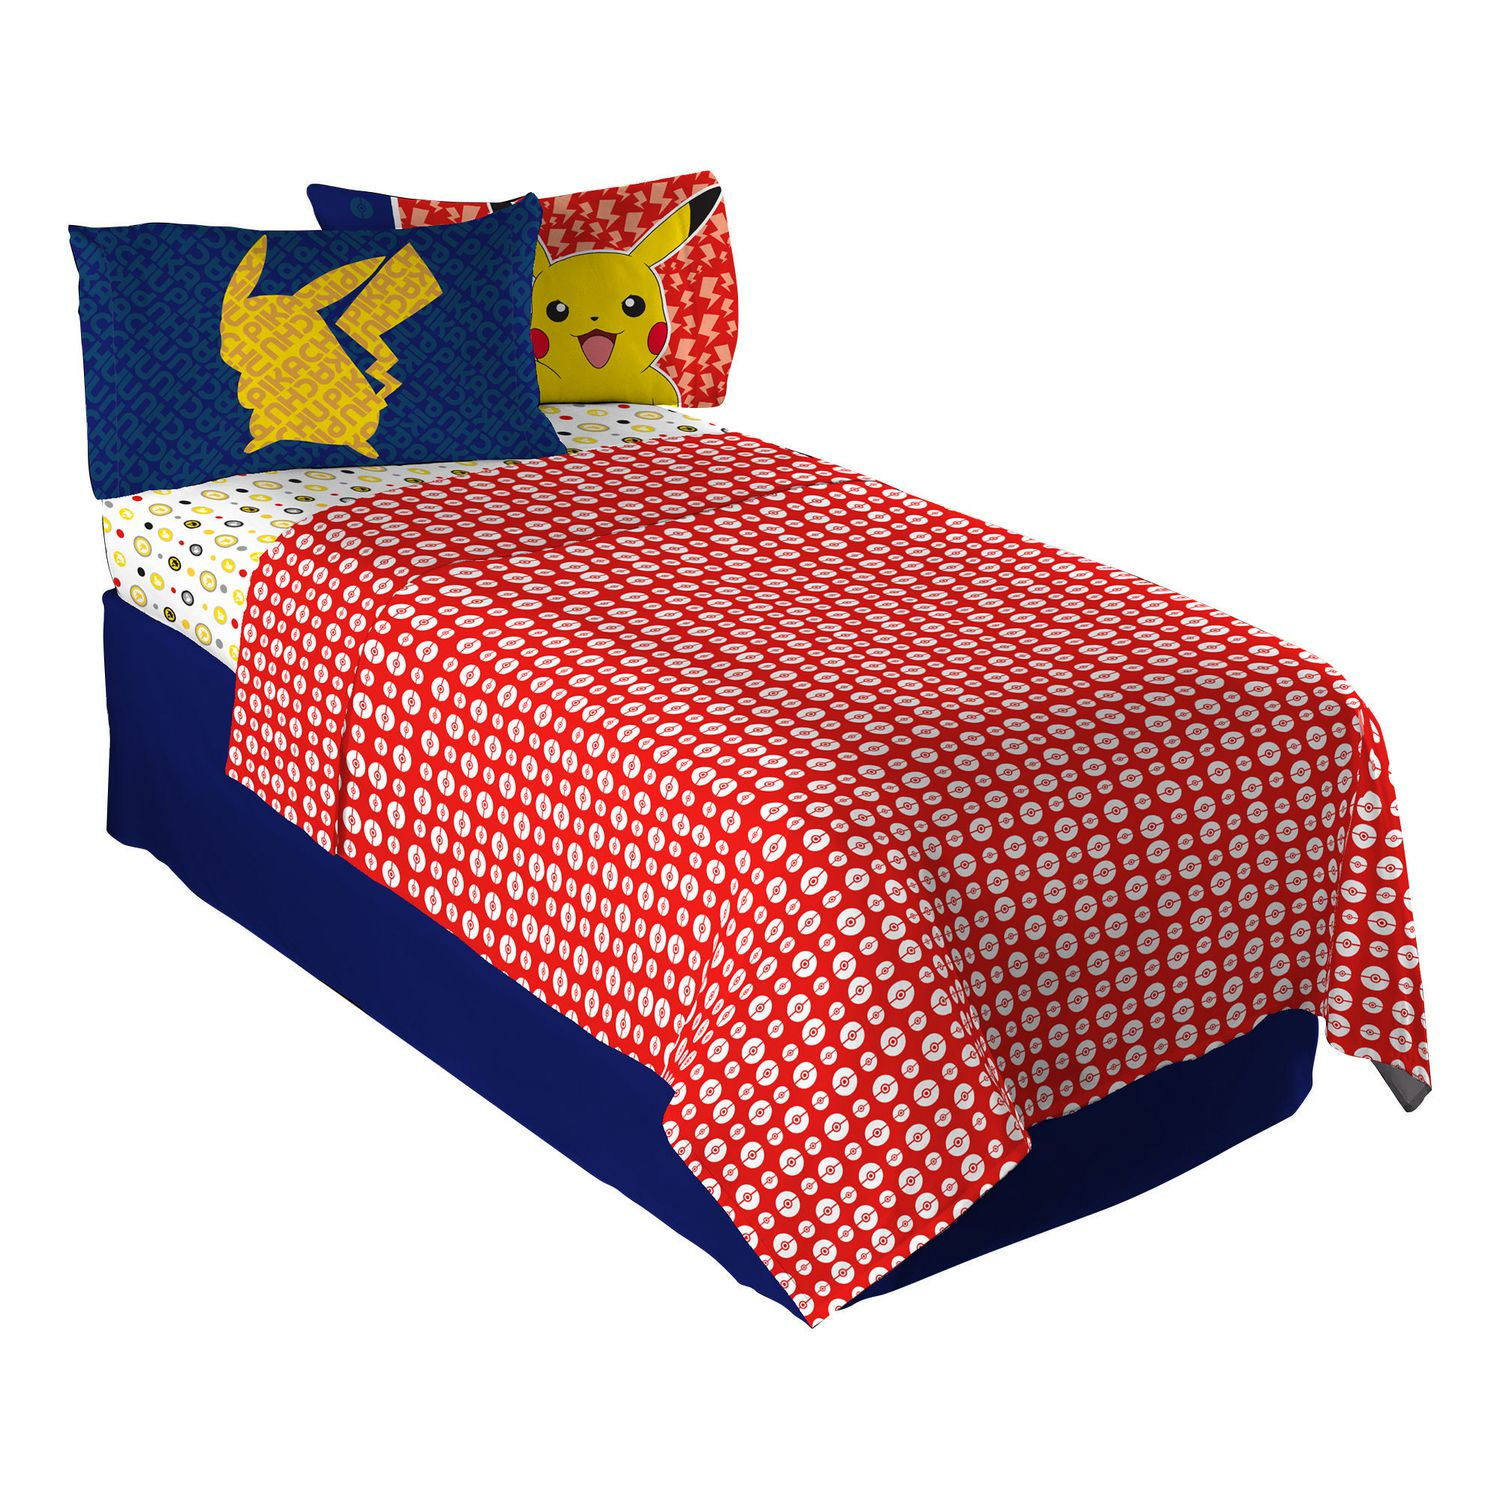 Fitted Sheet Canada Pokemon Pika Pika Pikachu Twin Single Sheet Set